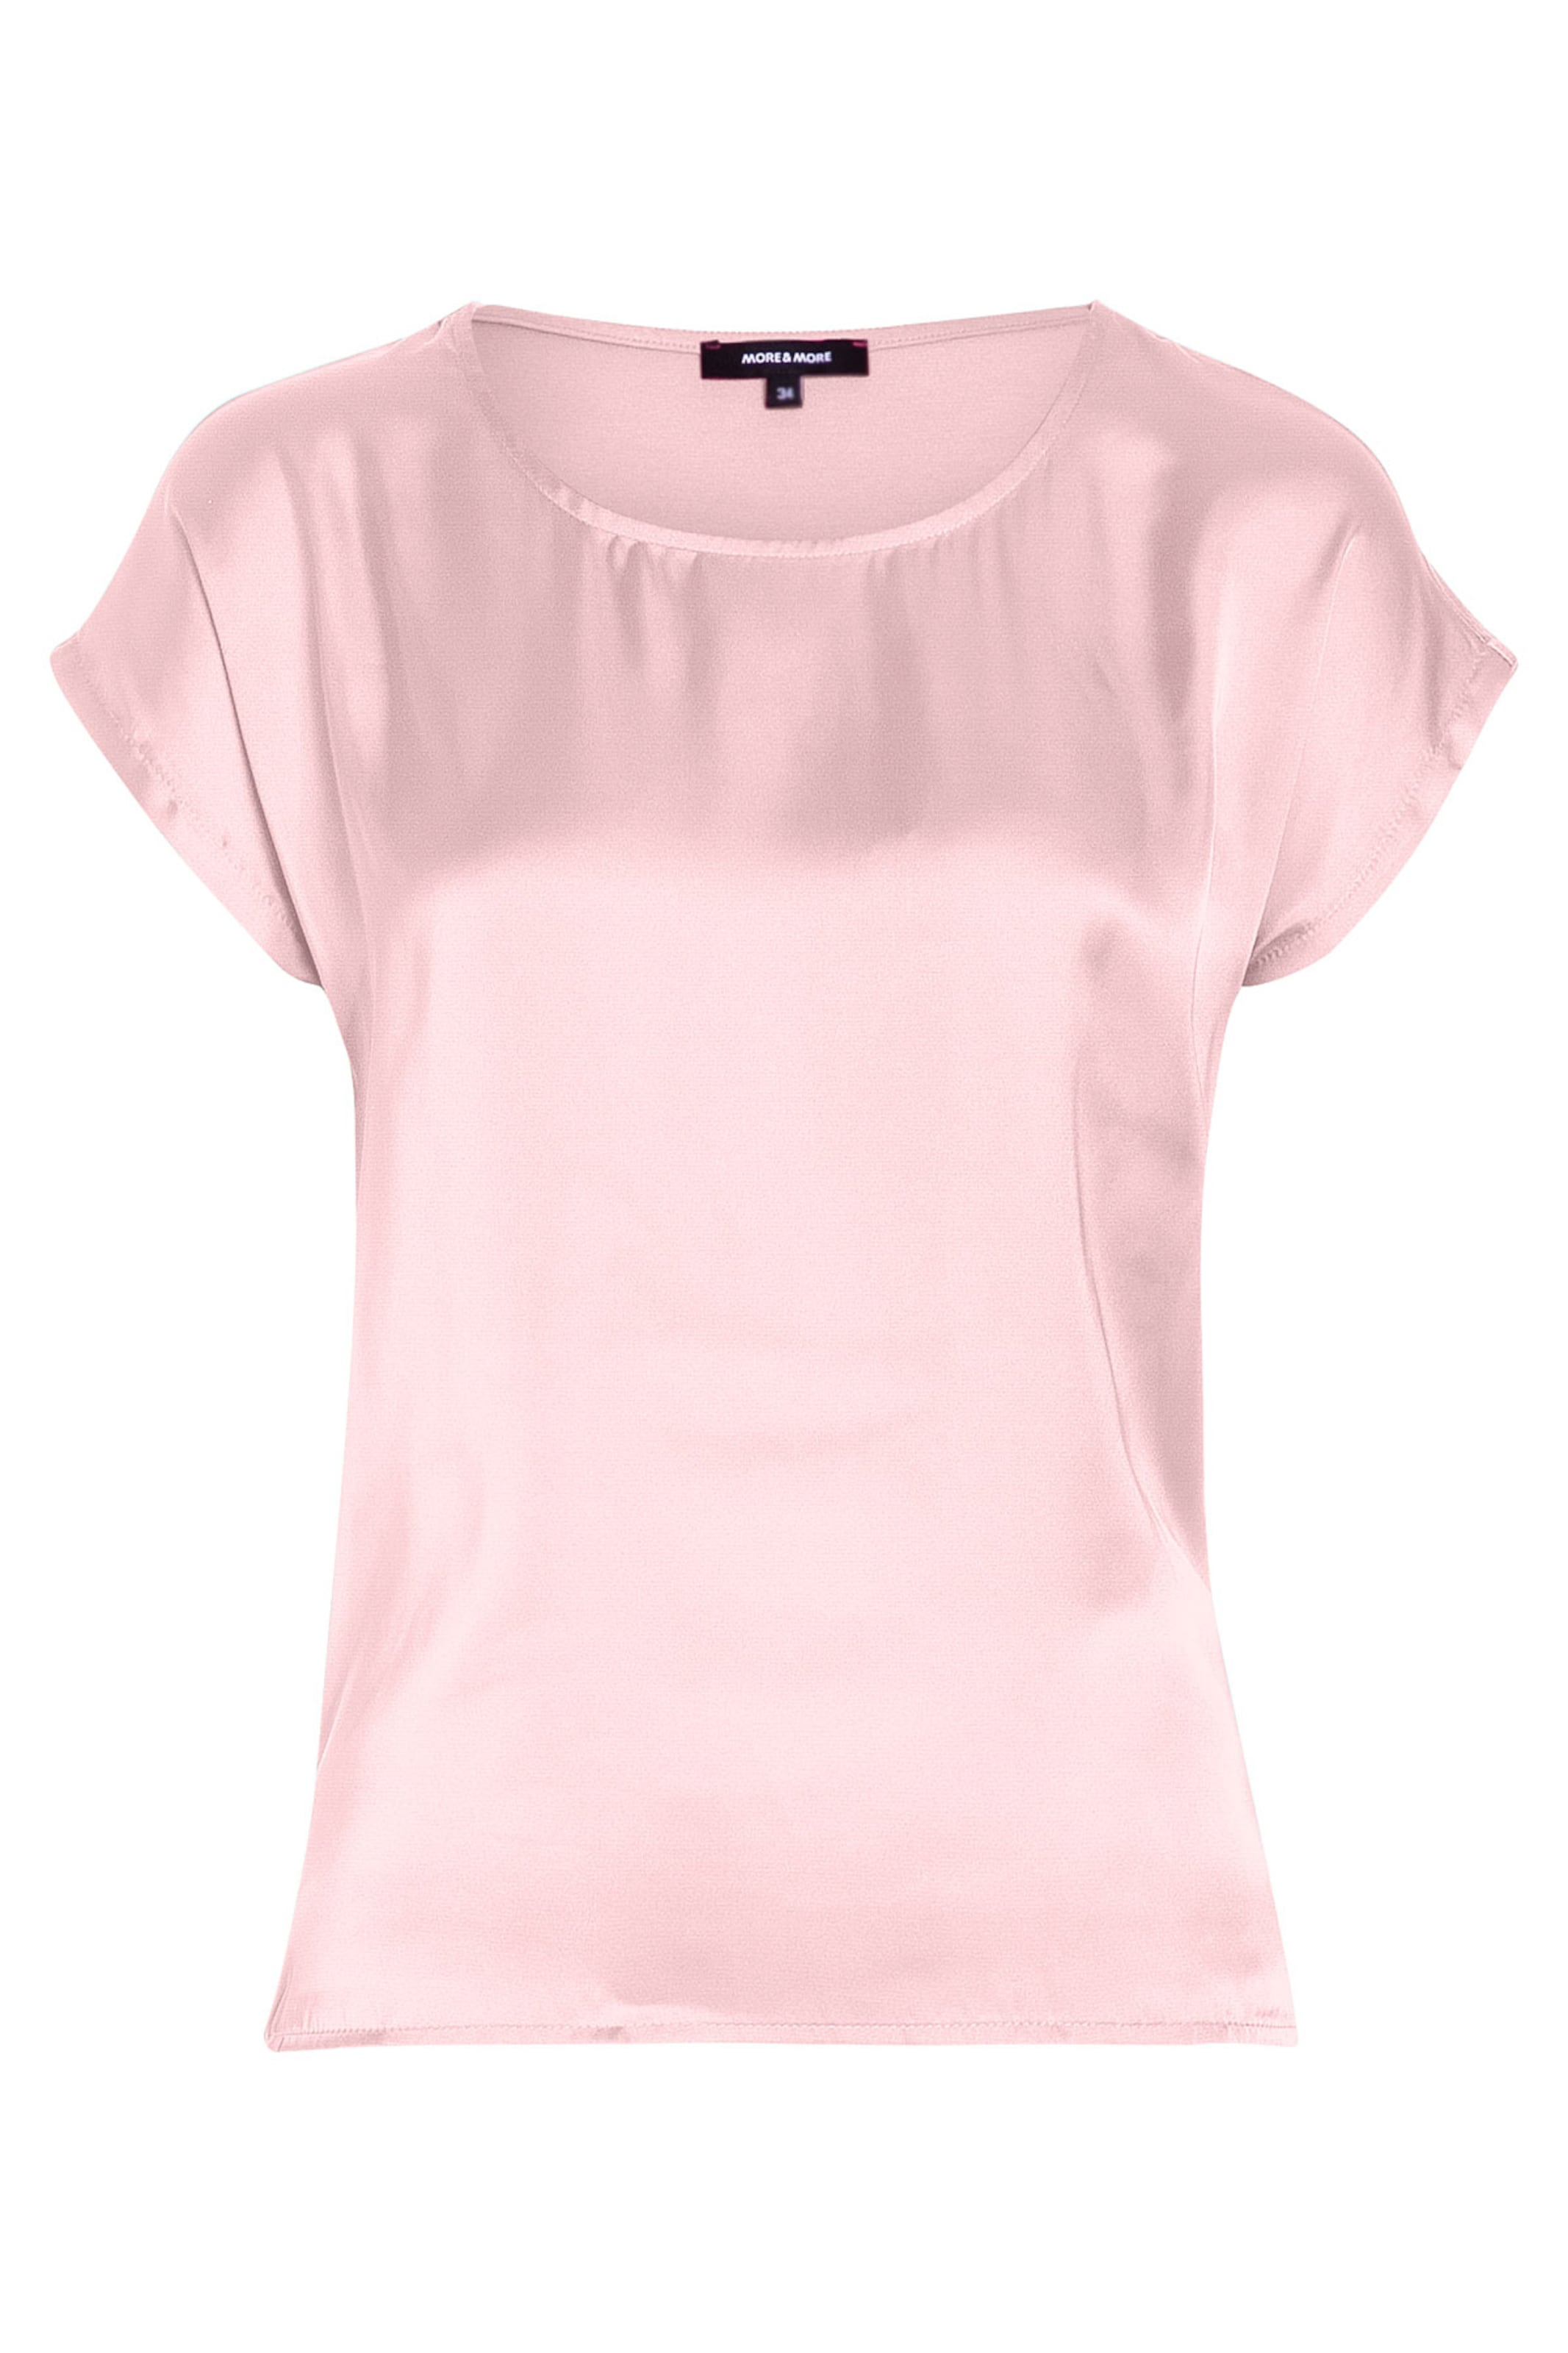 MORE & MORE Shirt mit Satinfront, pink